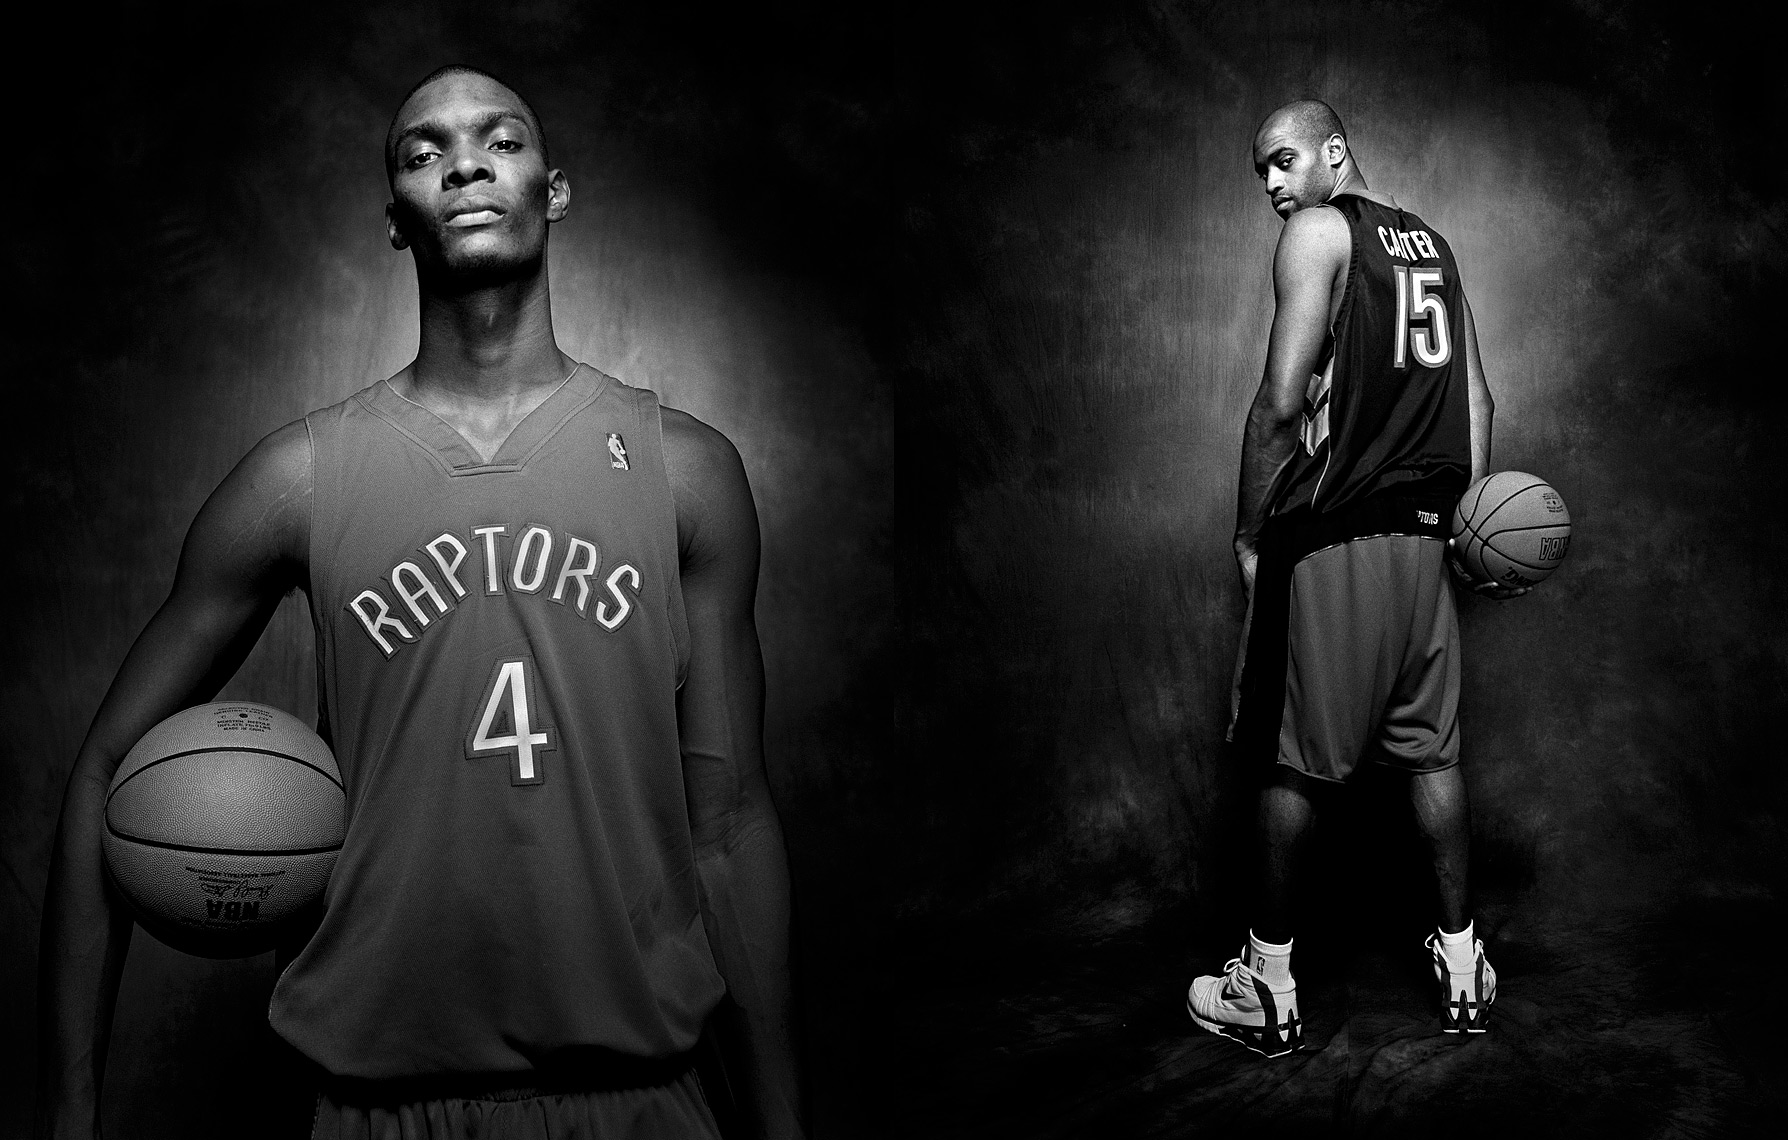 Toronto Raptors_Chris Bosh_Vince Carter